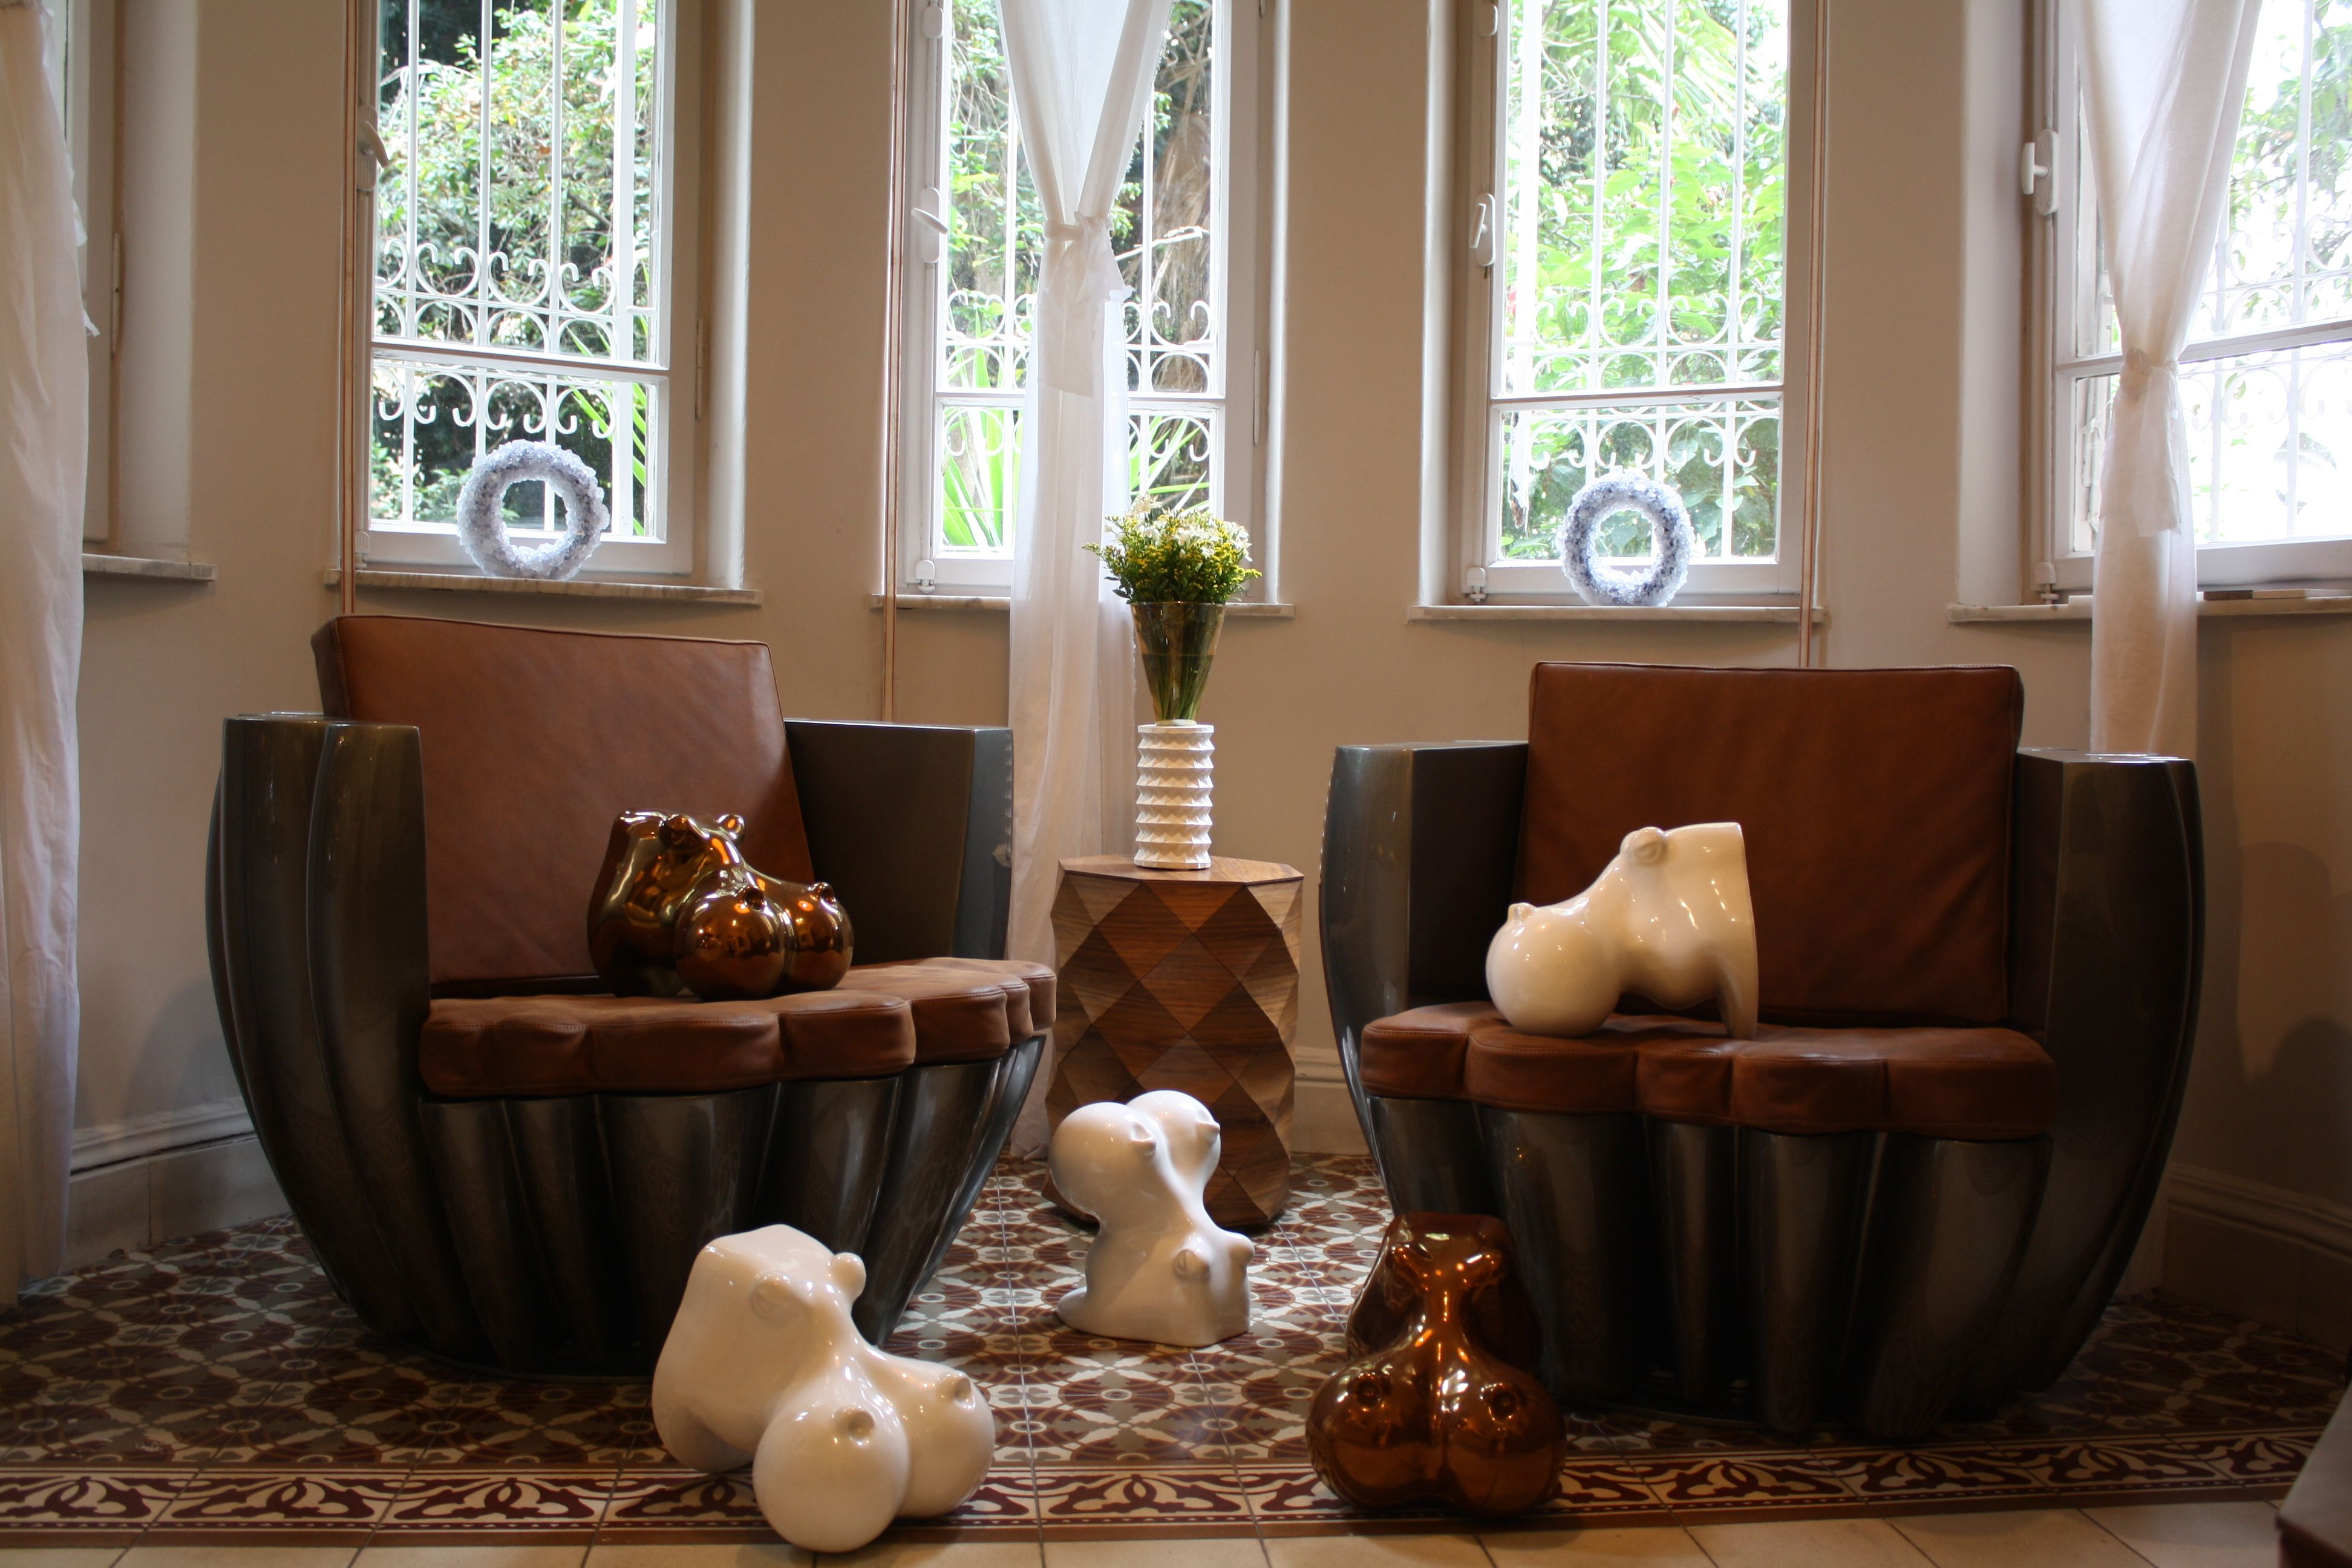 Cloud Armchairs By Samuel Ben Shalom, Jojo The Sex Buddha By Dor Carmon For  Talents